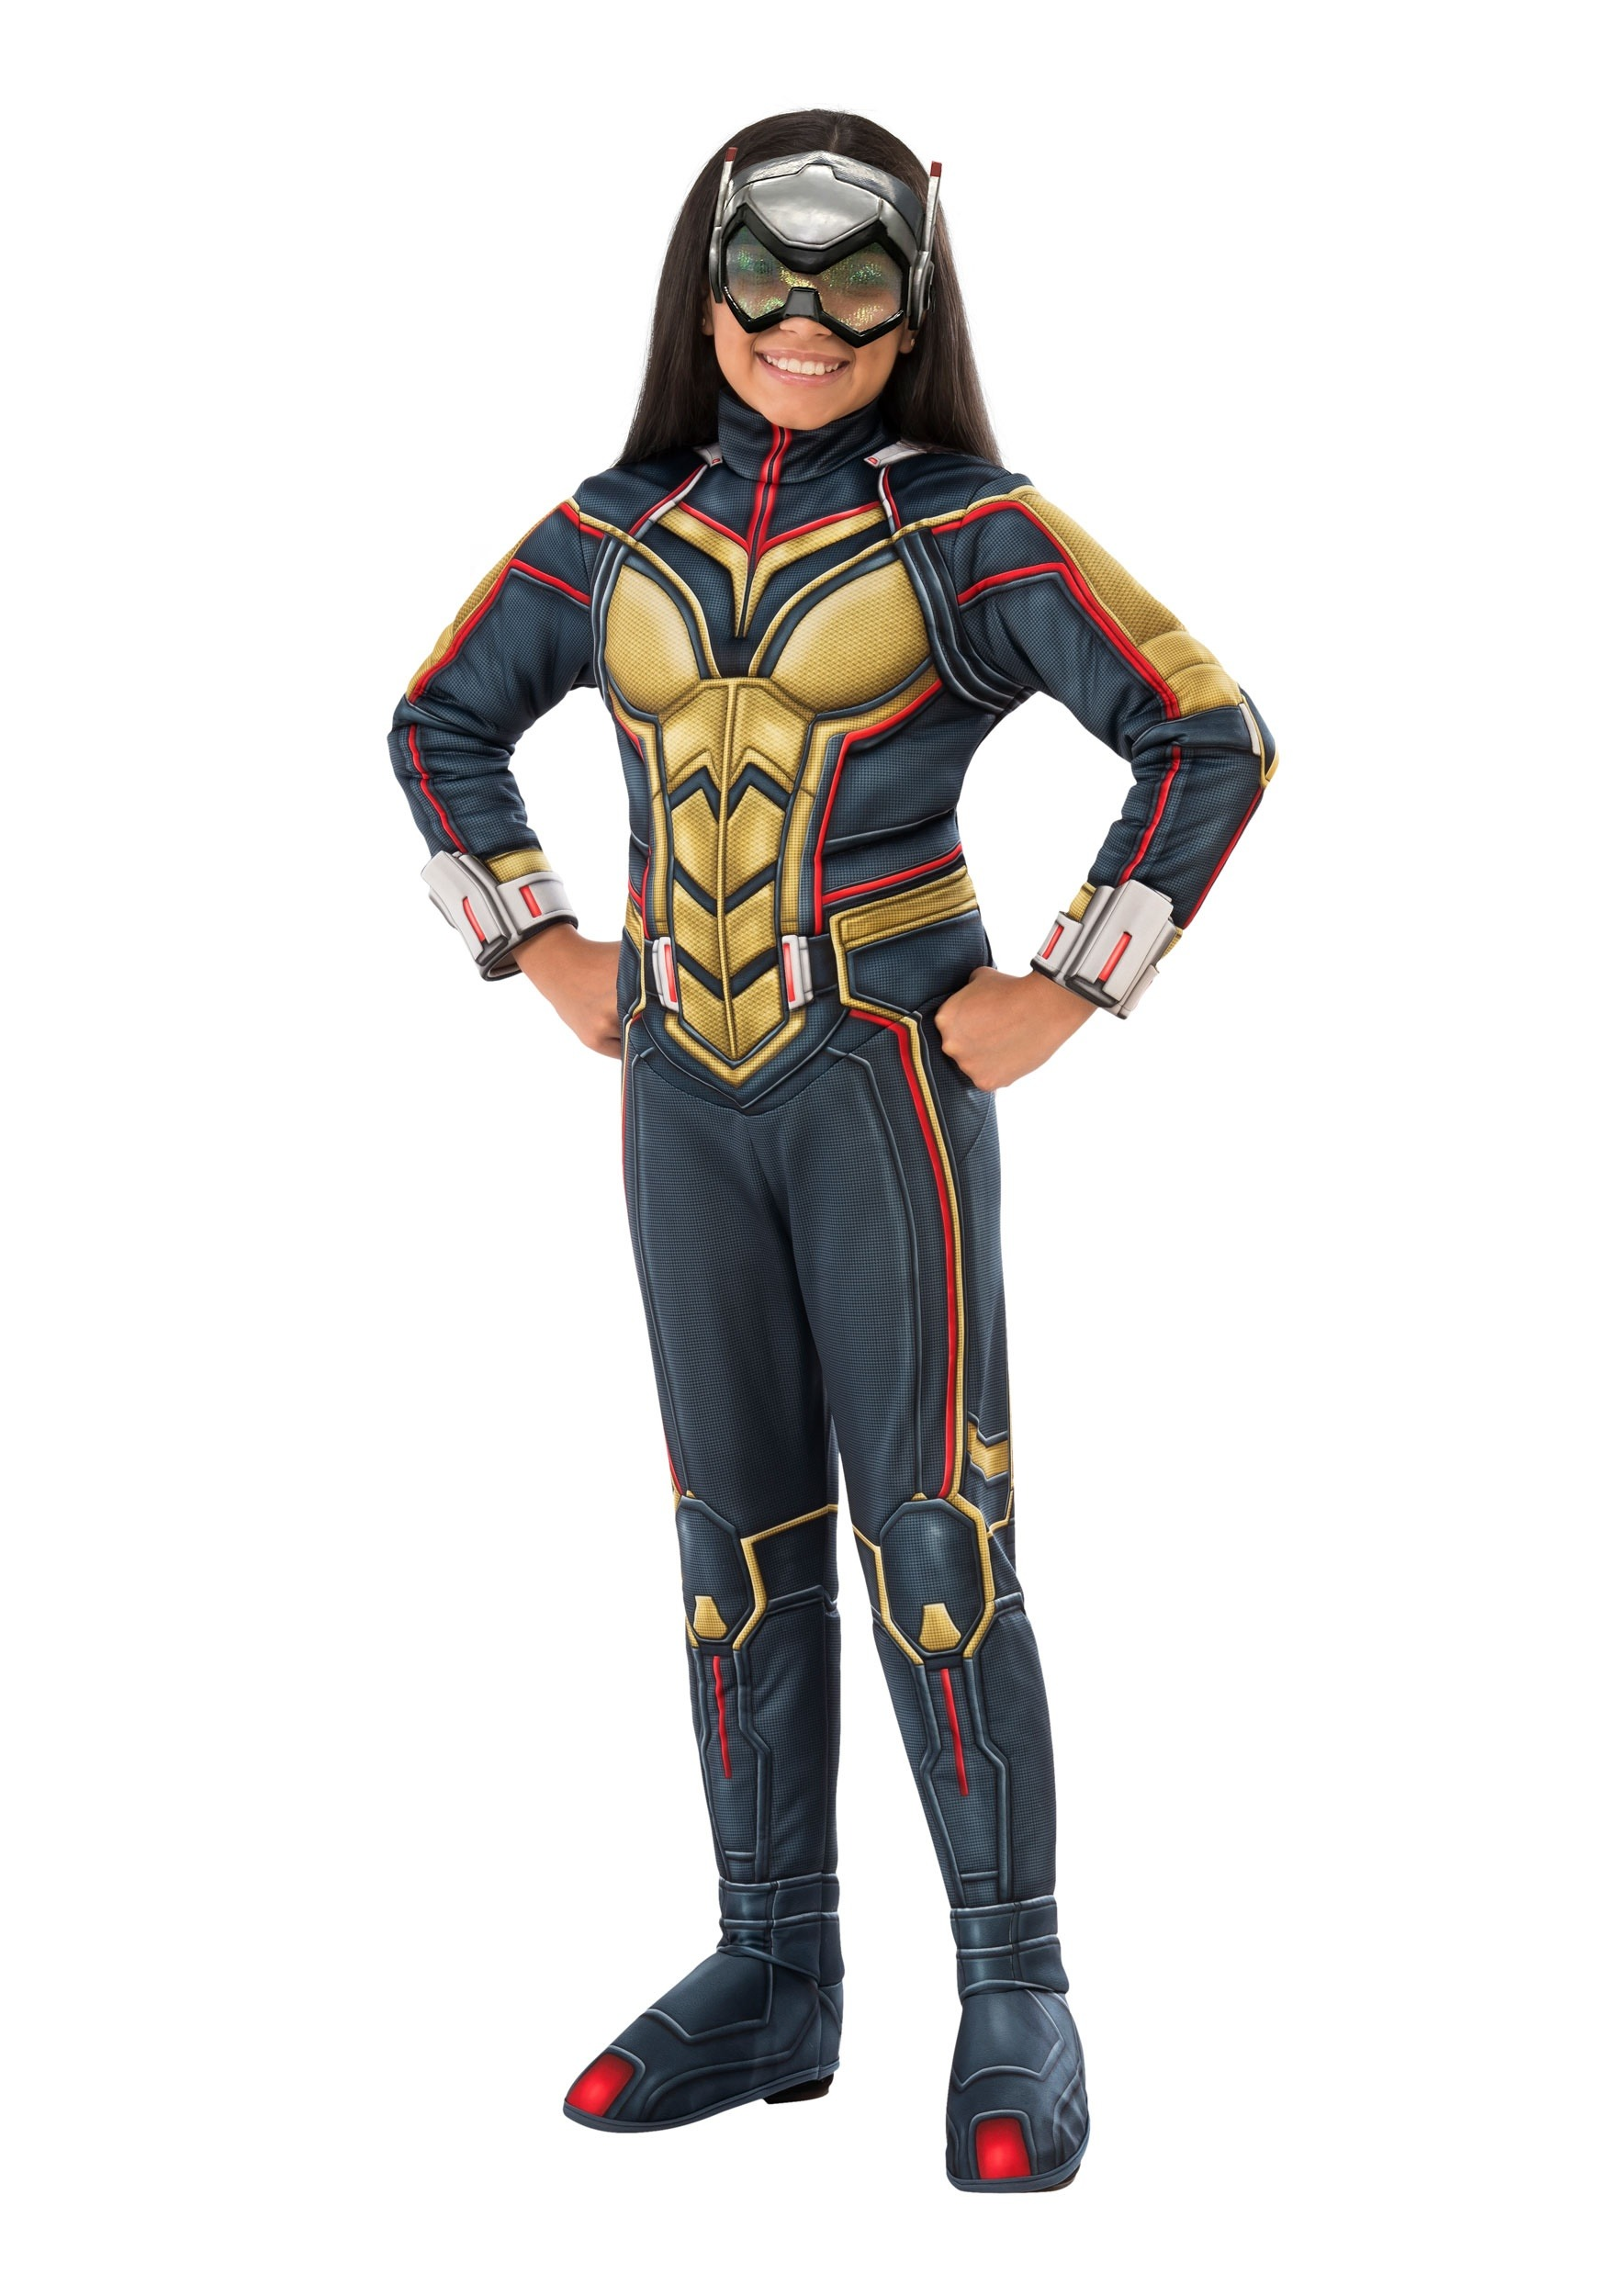 Ant-Man and the Wasp Wasp Costume for Girls